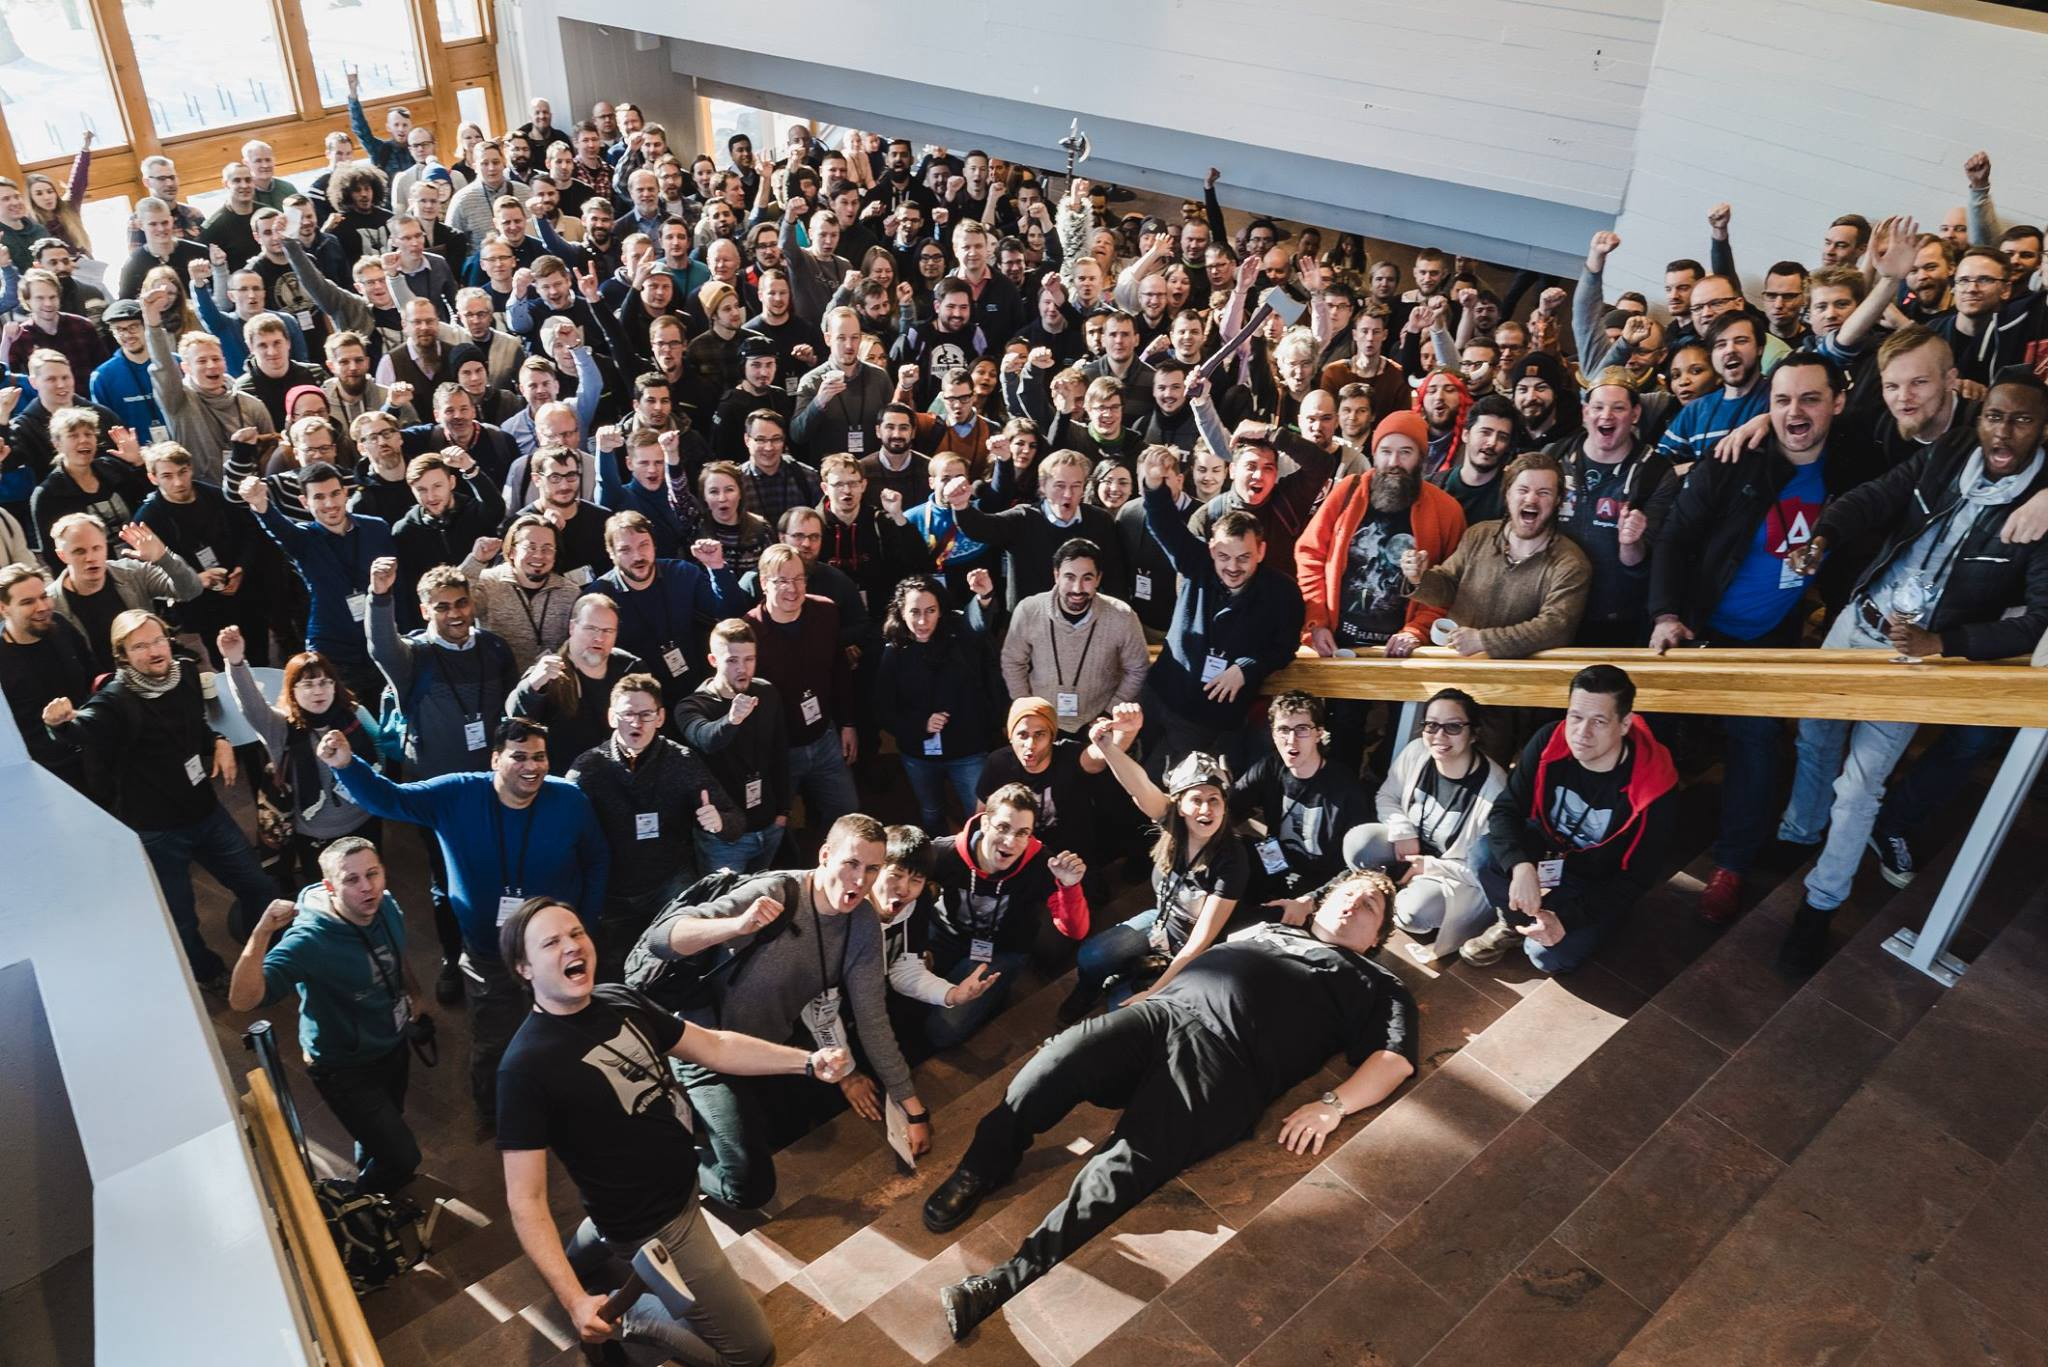 Over 300 developers attended ngVikings